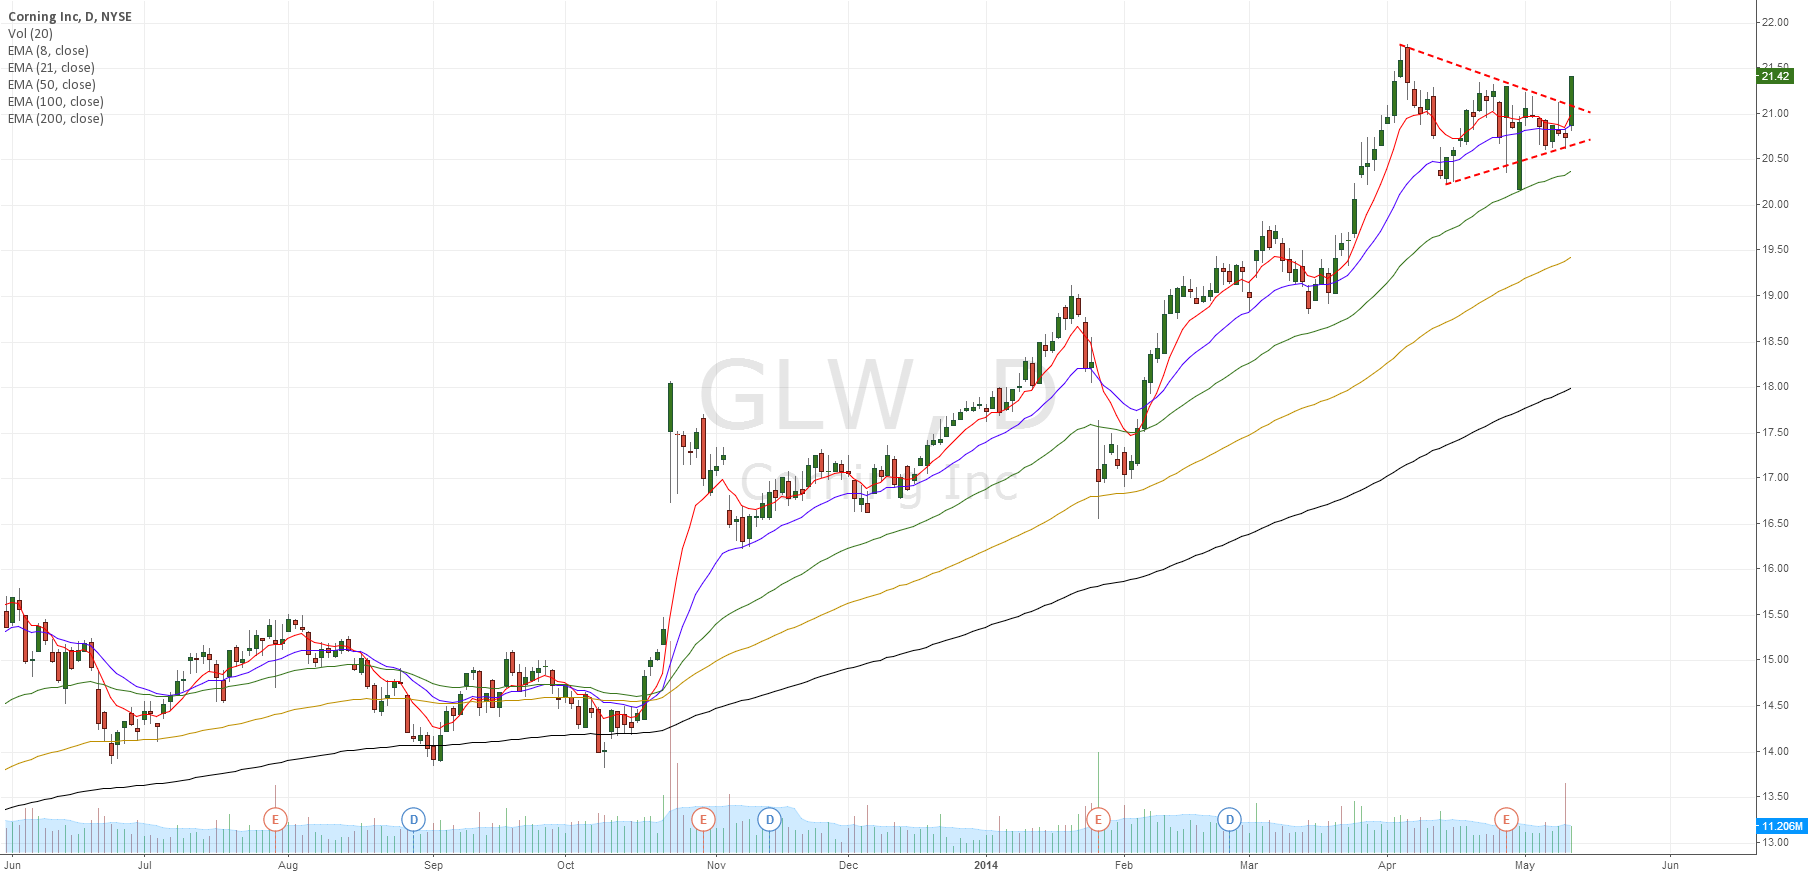 GLW break up of wedge, strong up trend